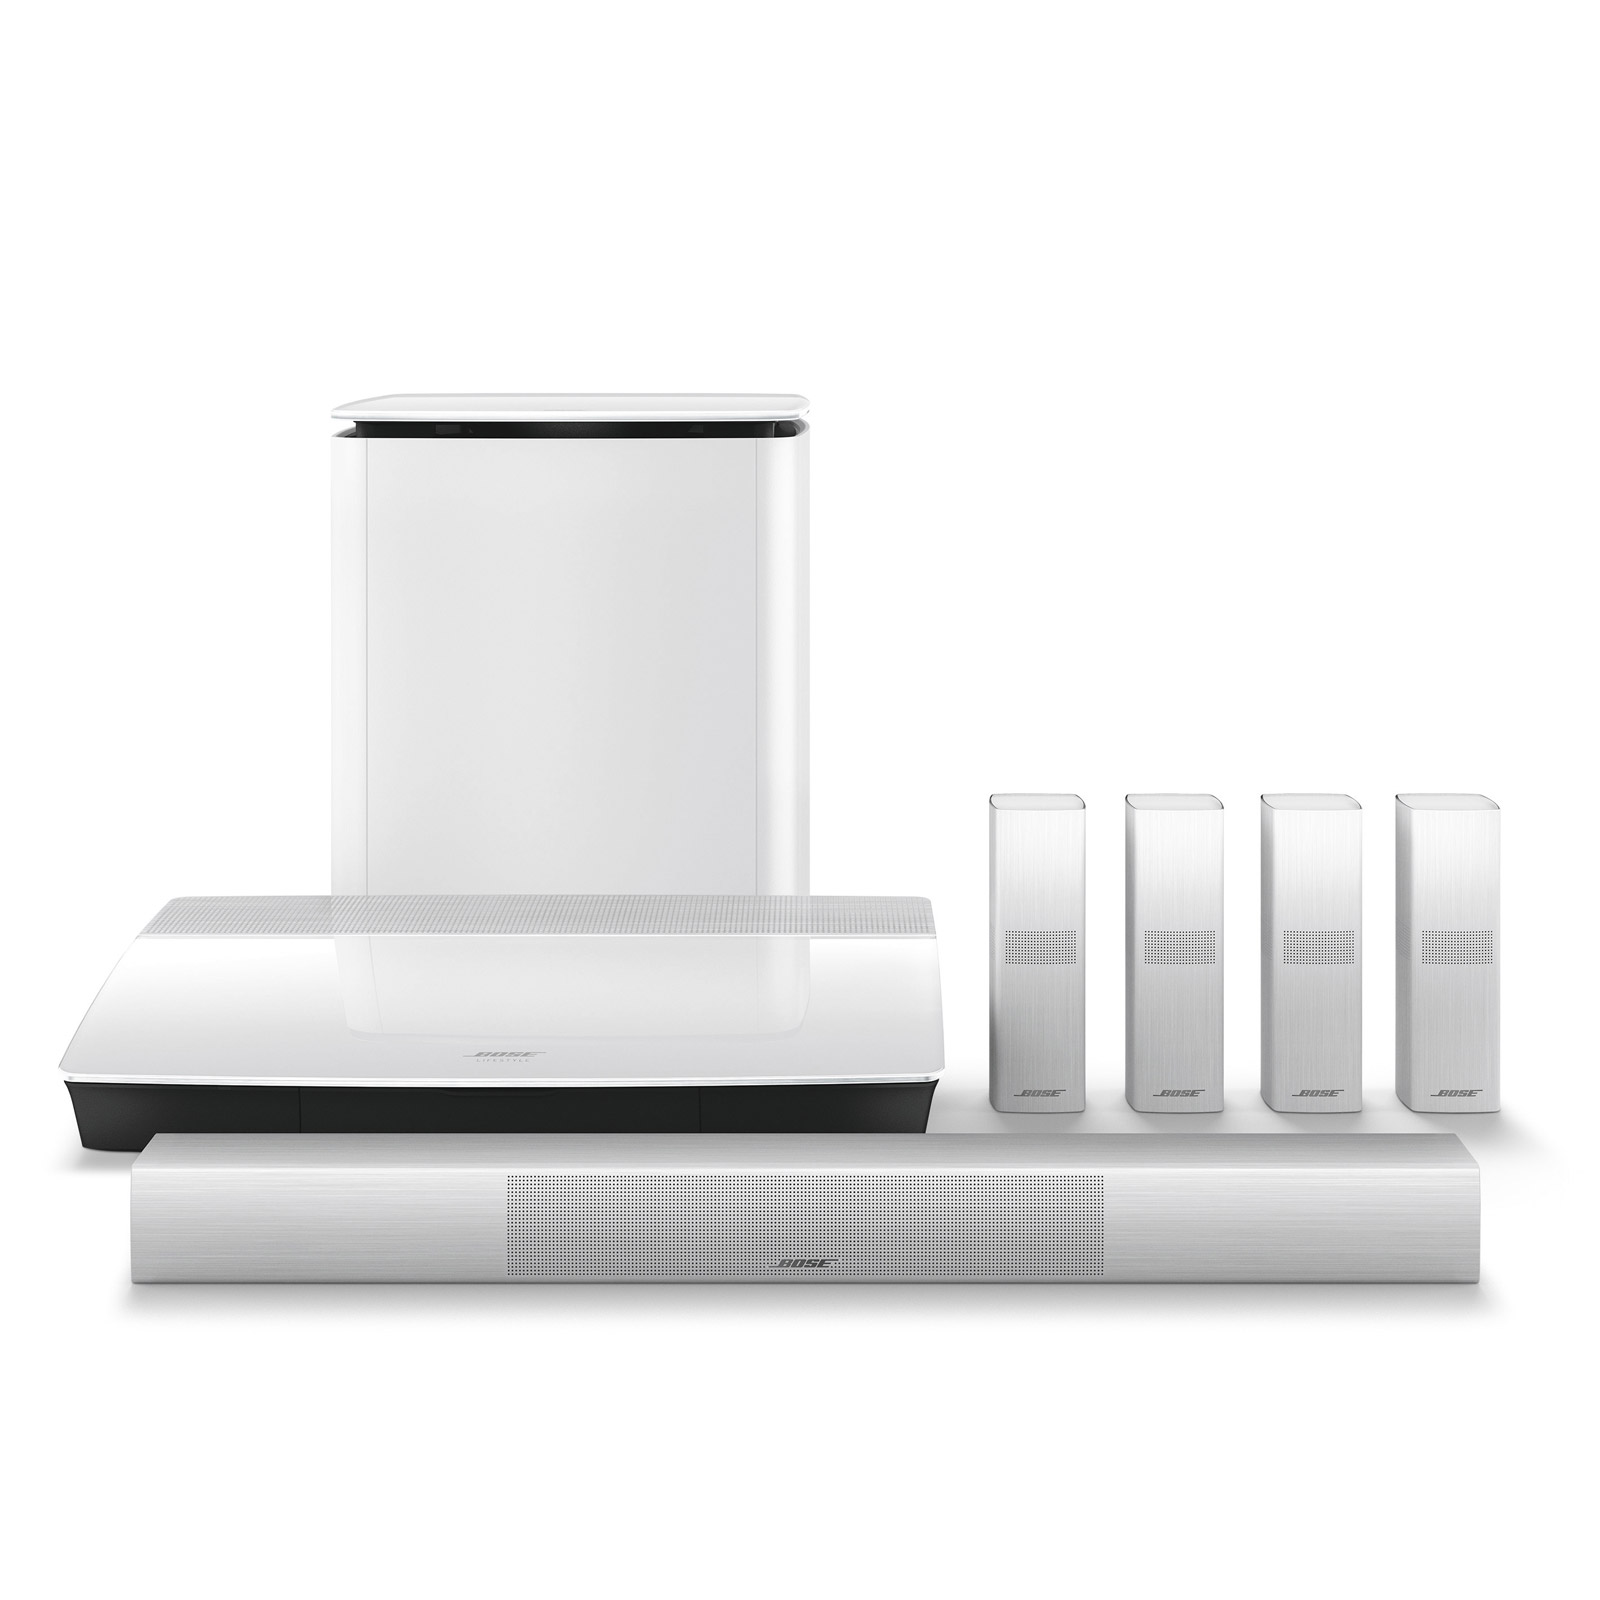 Bose LS 650 WHT Lifestyle 650 Home Entertainment System in White